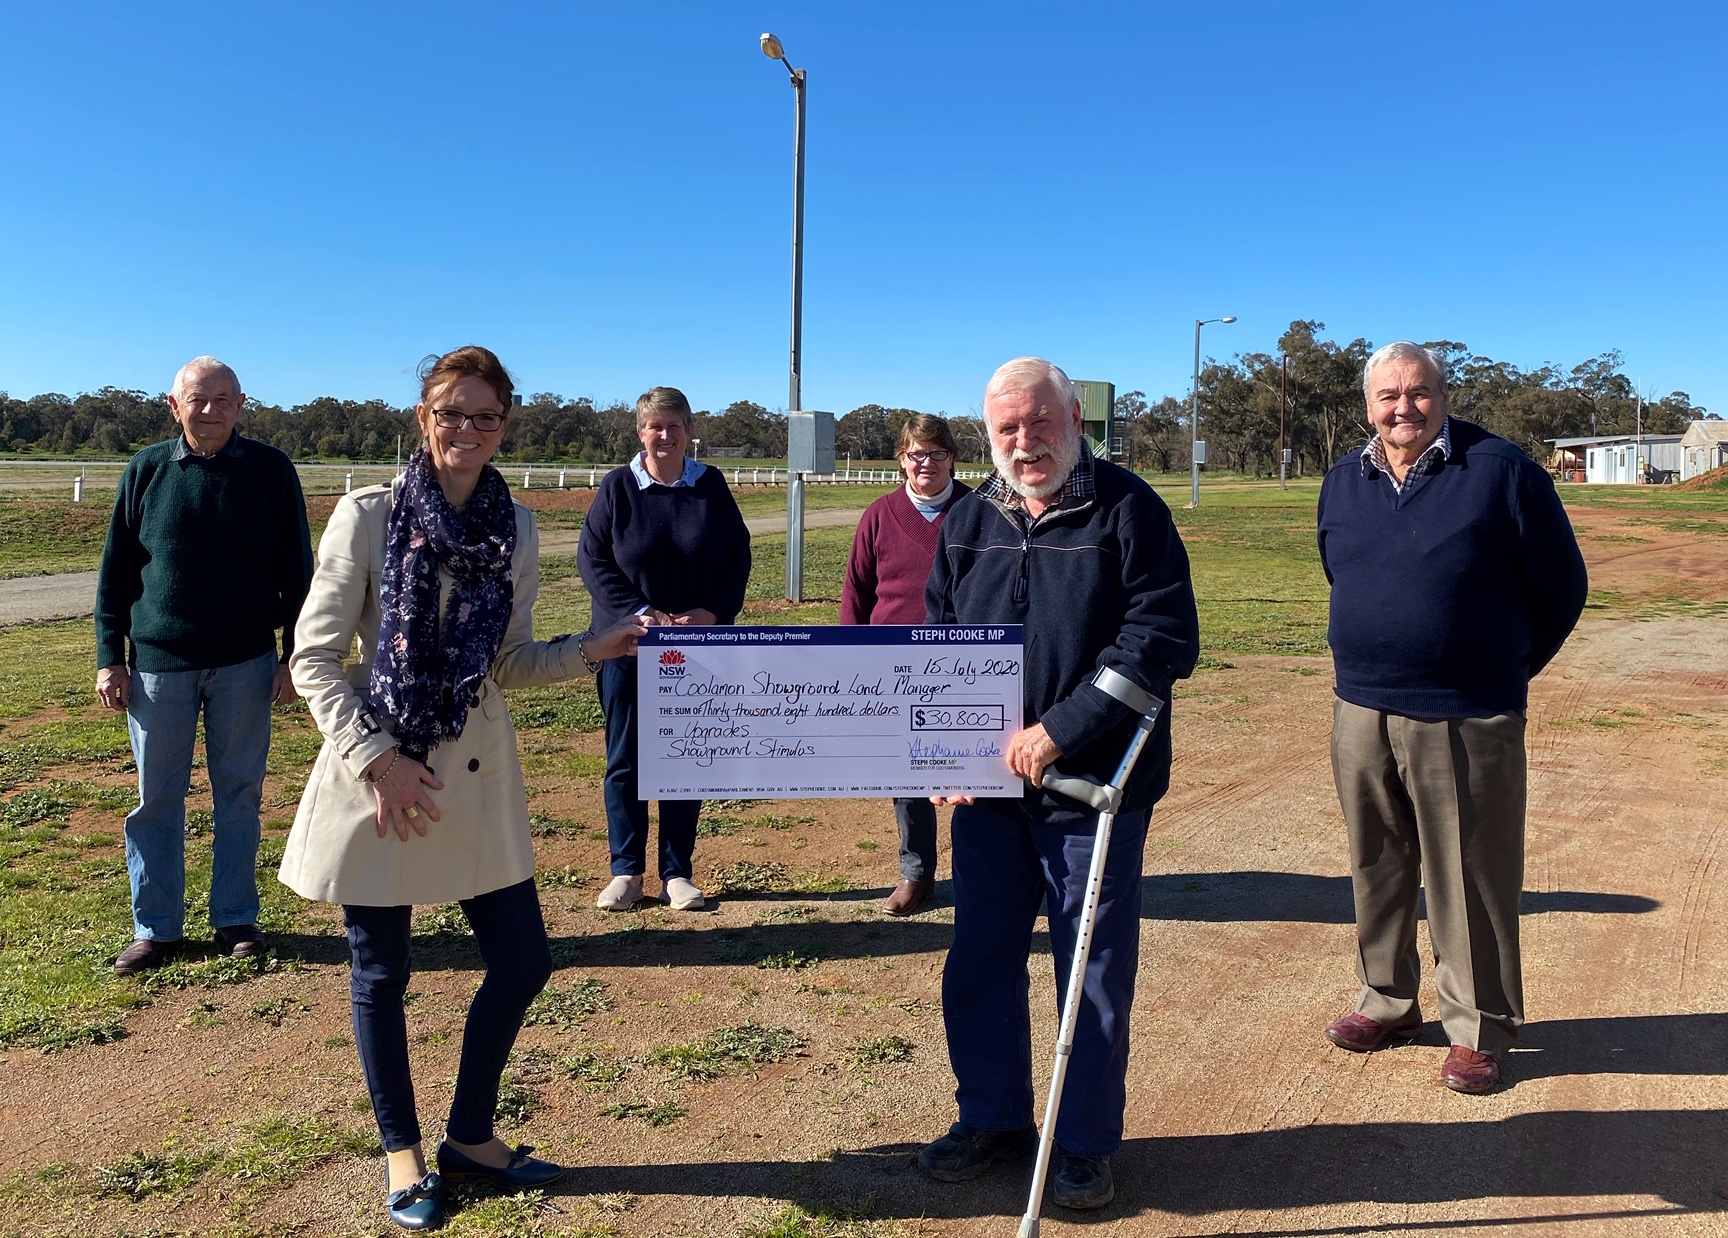 Wendy and Peter Dennis, Barry Brill, Steph Cooke MP and Cr John Seymour hold a large cheque at the Coolamon showground.